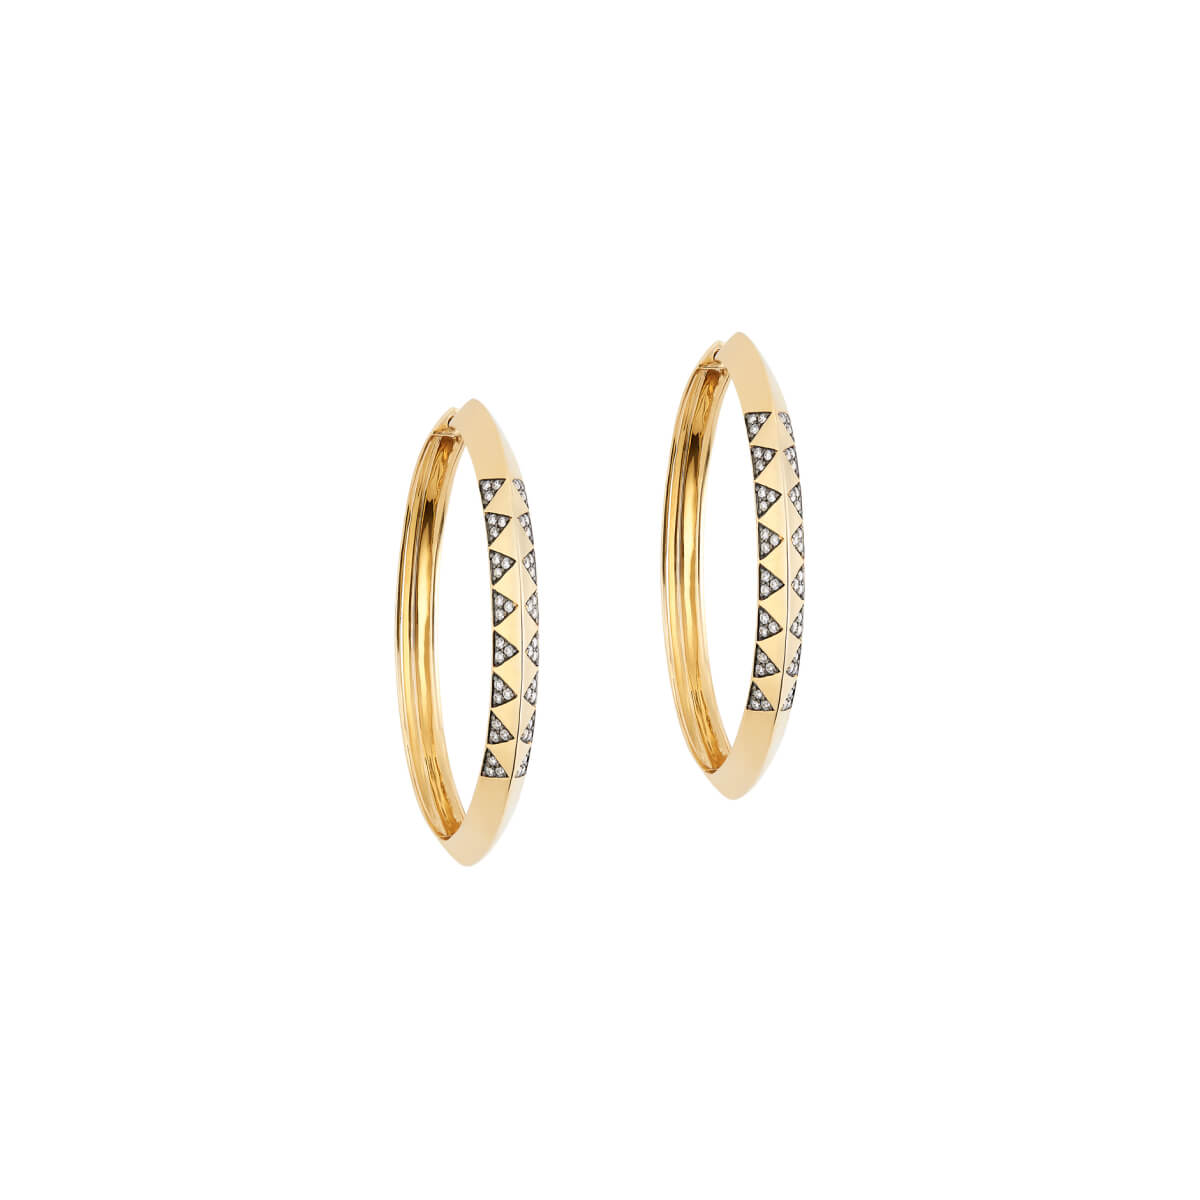 Harwell Godfrey earrings